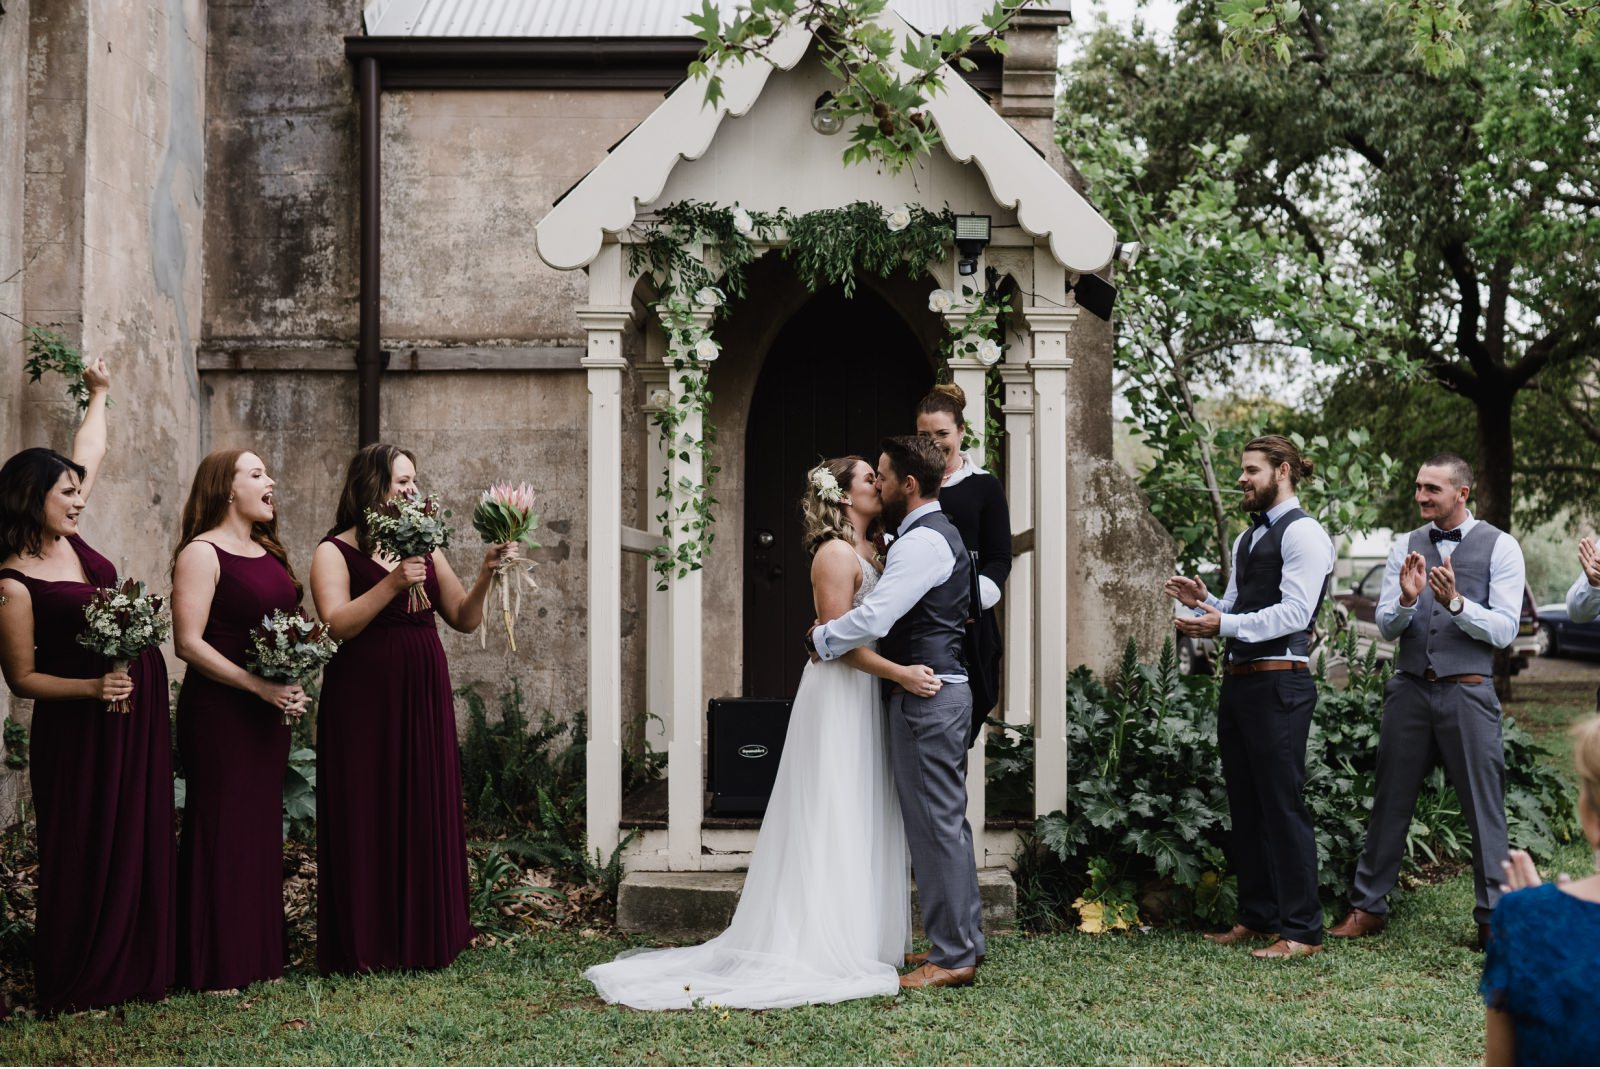 scone-wedding-photographer-upper-hunter-valley-28